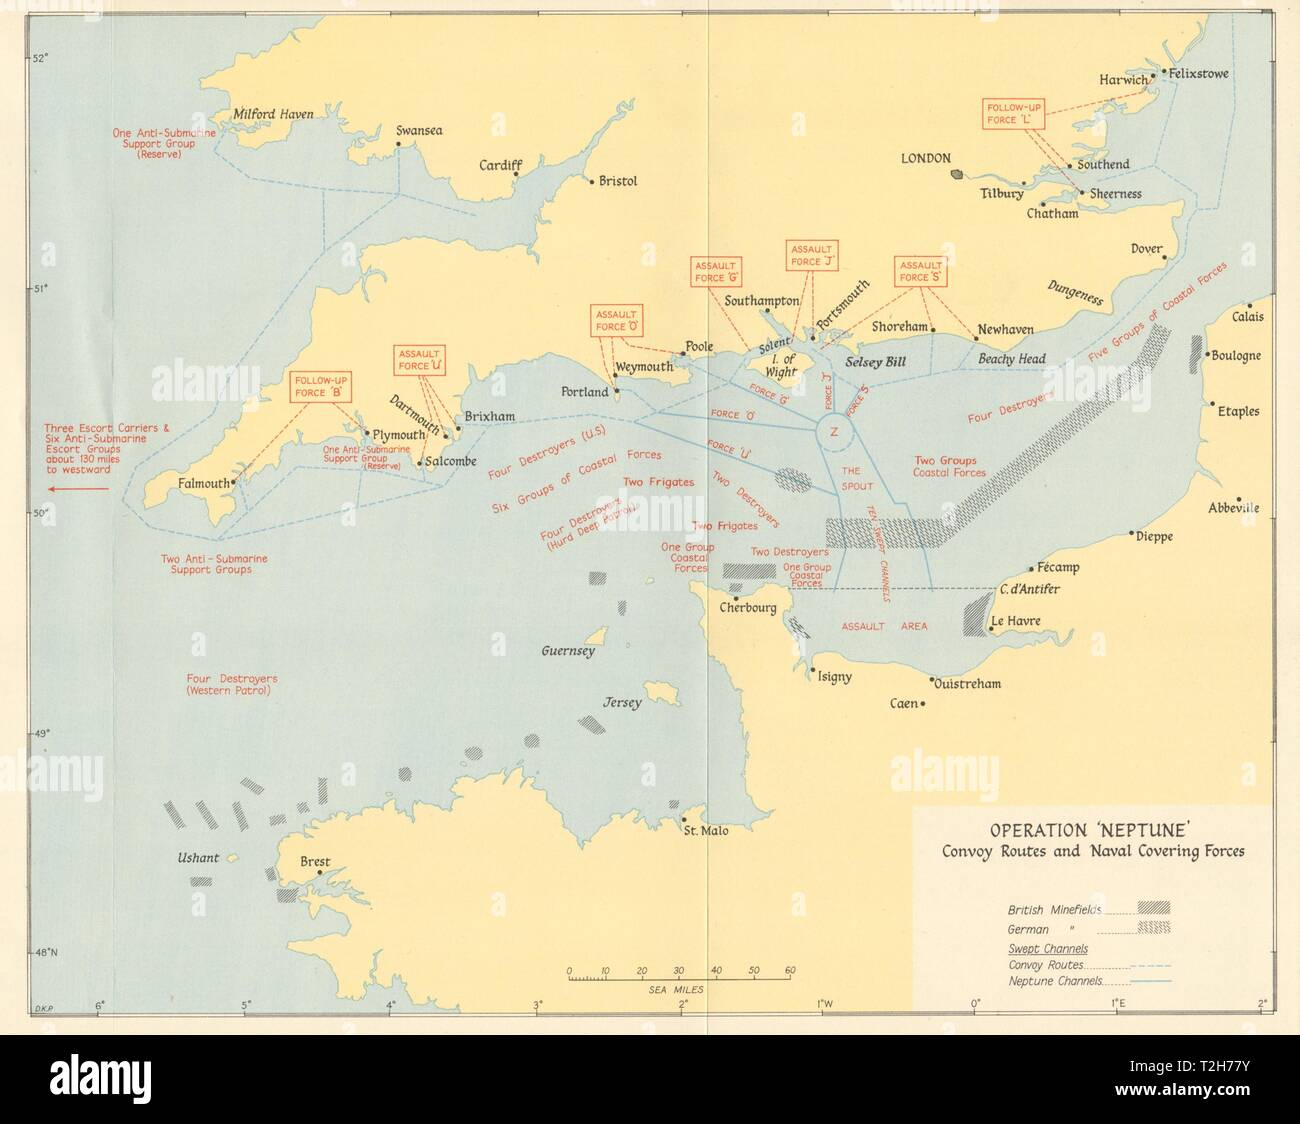 D Day Operation Neptune June 1944 Convoy Routes Naval Covering Forces 1962 Map Stock Photo Alamy